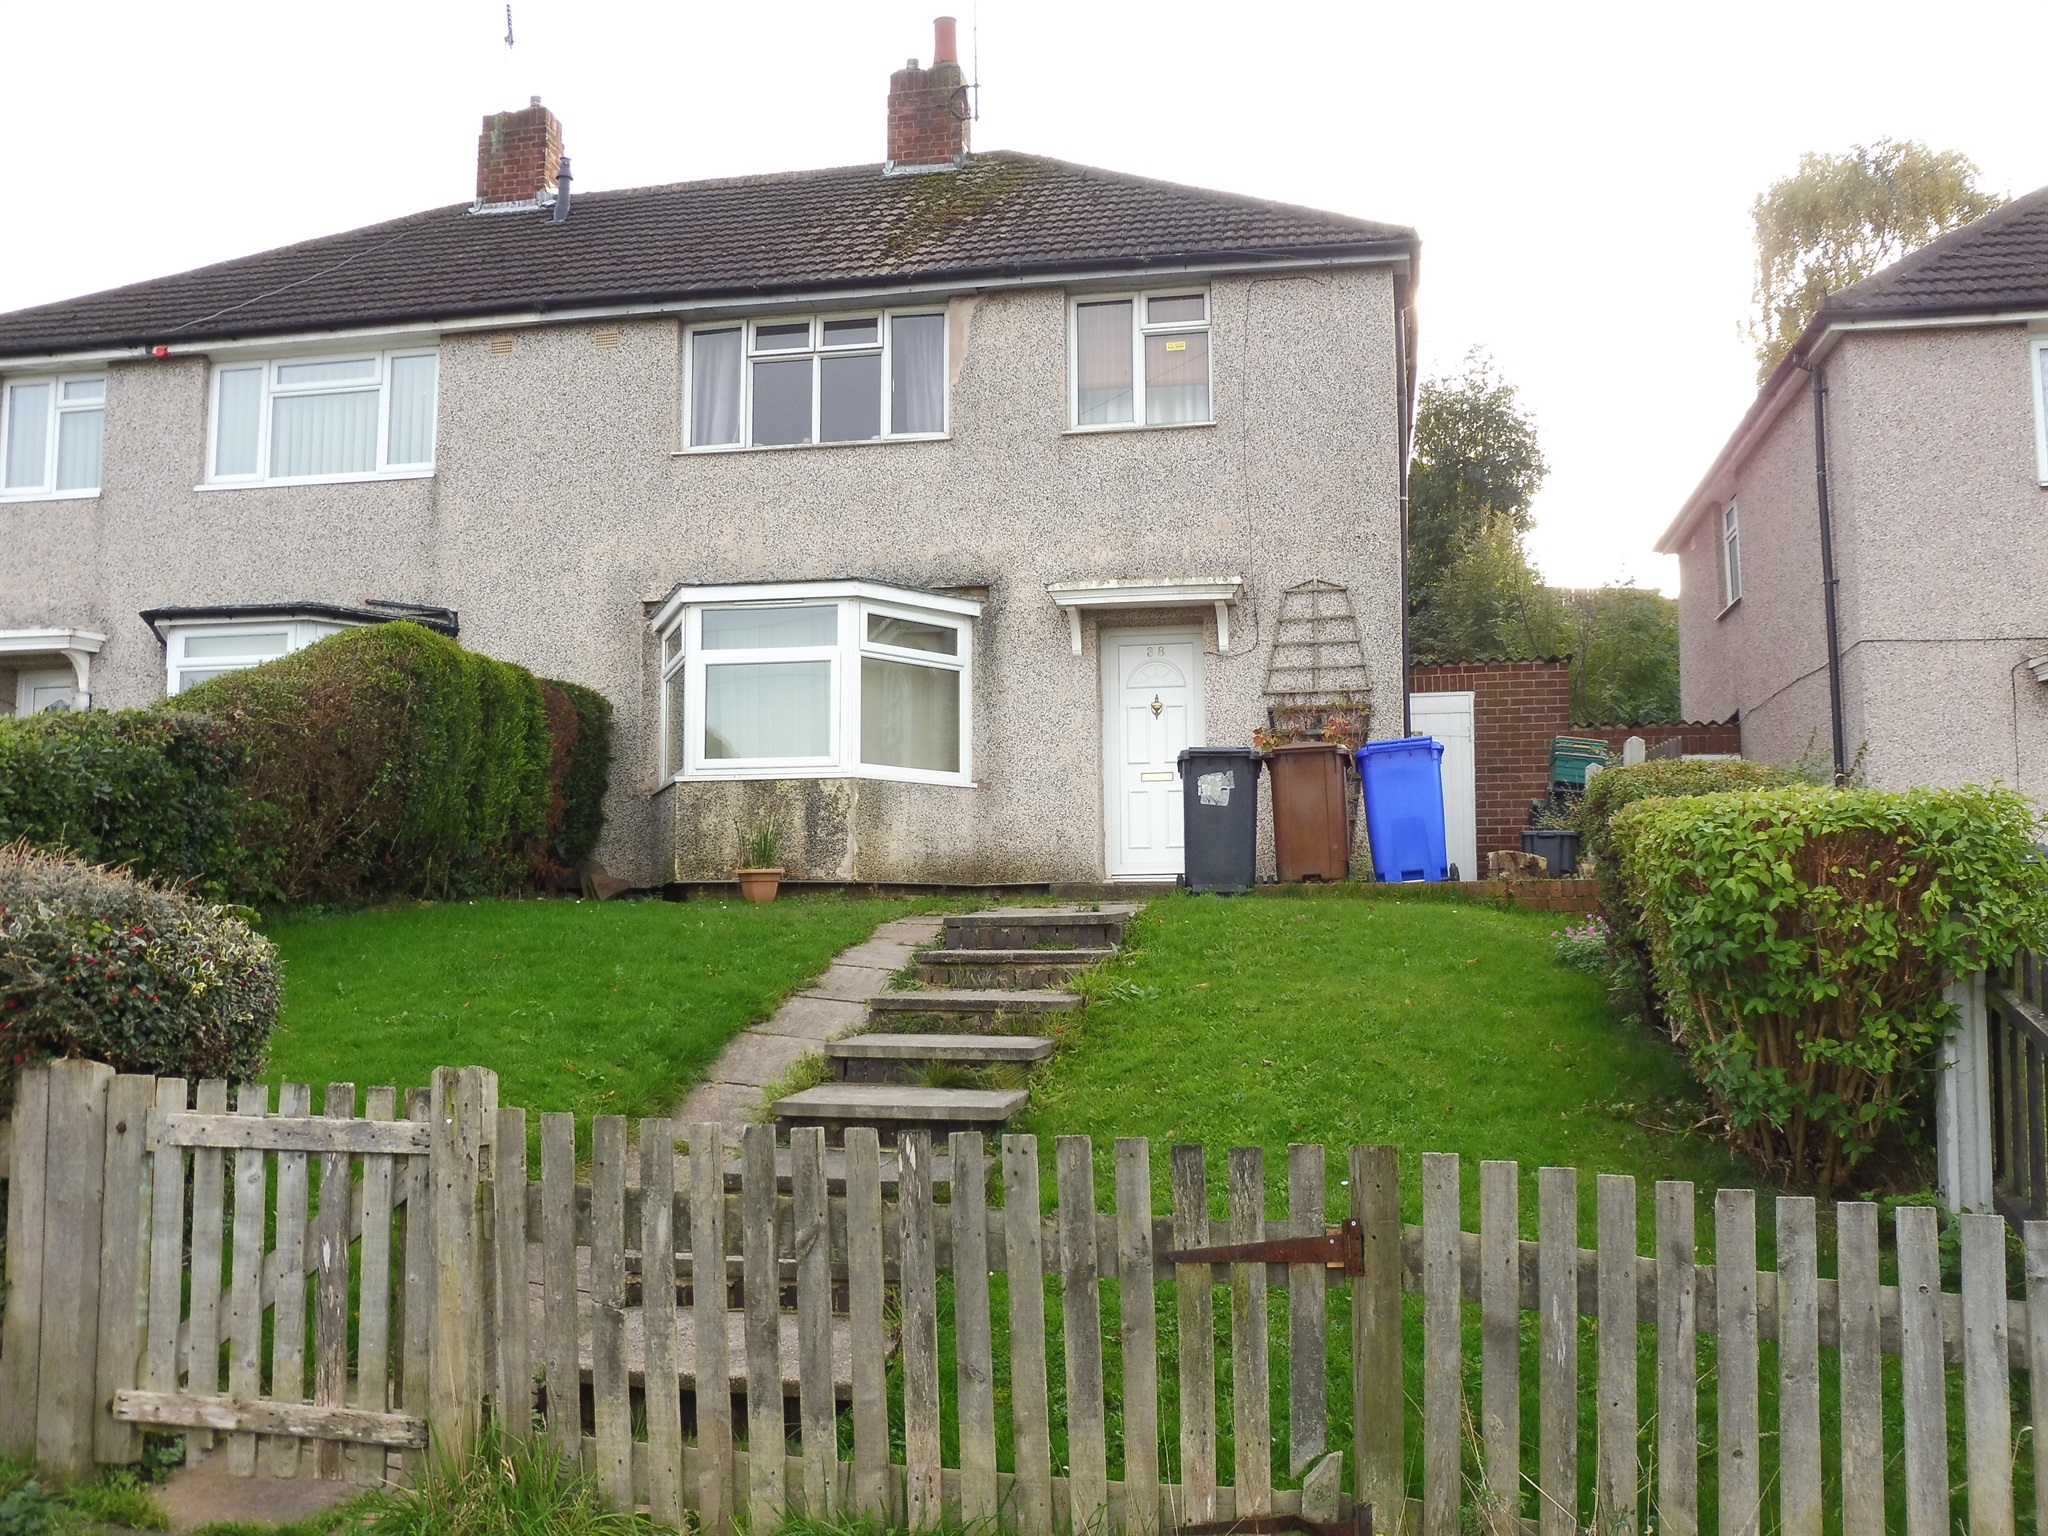 3 bedroom for rent brton 28 images beautiful house for for 6 bedroom house for rent near me